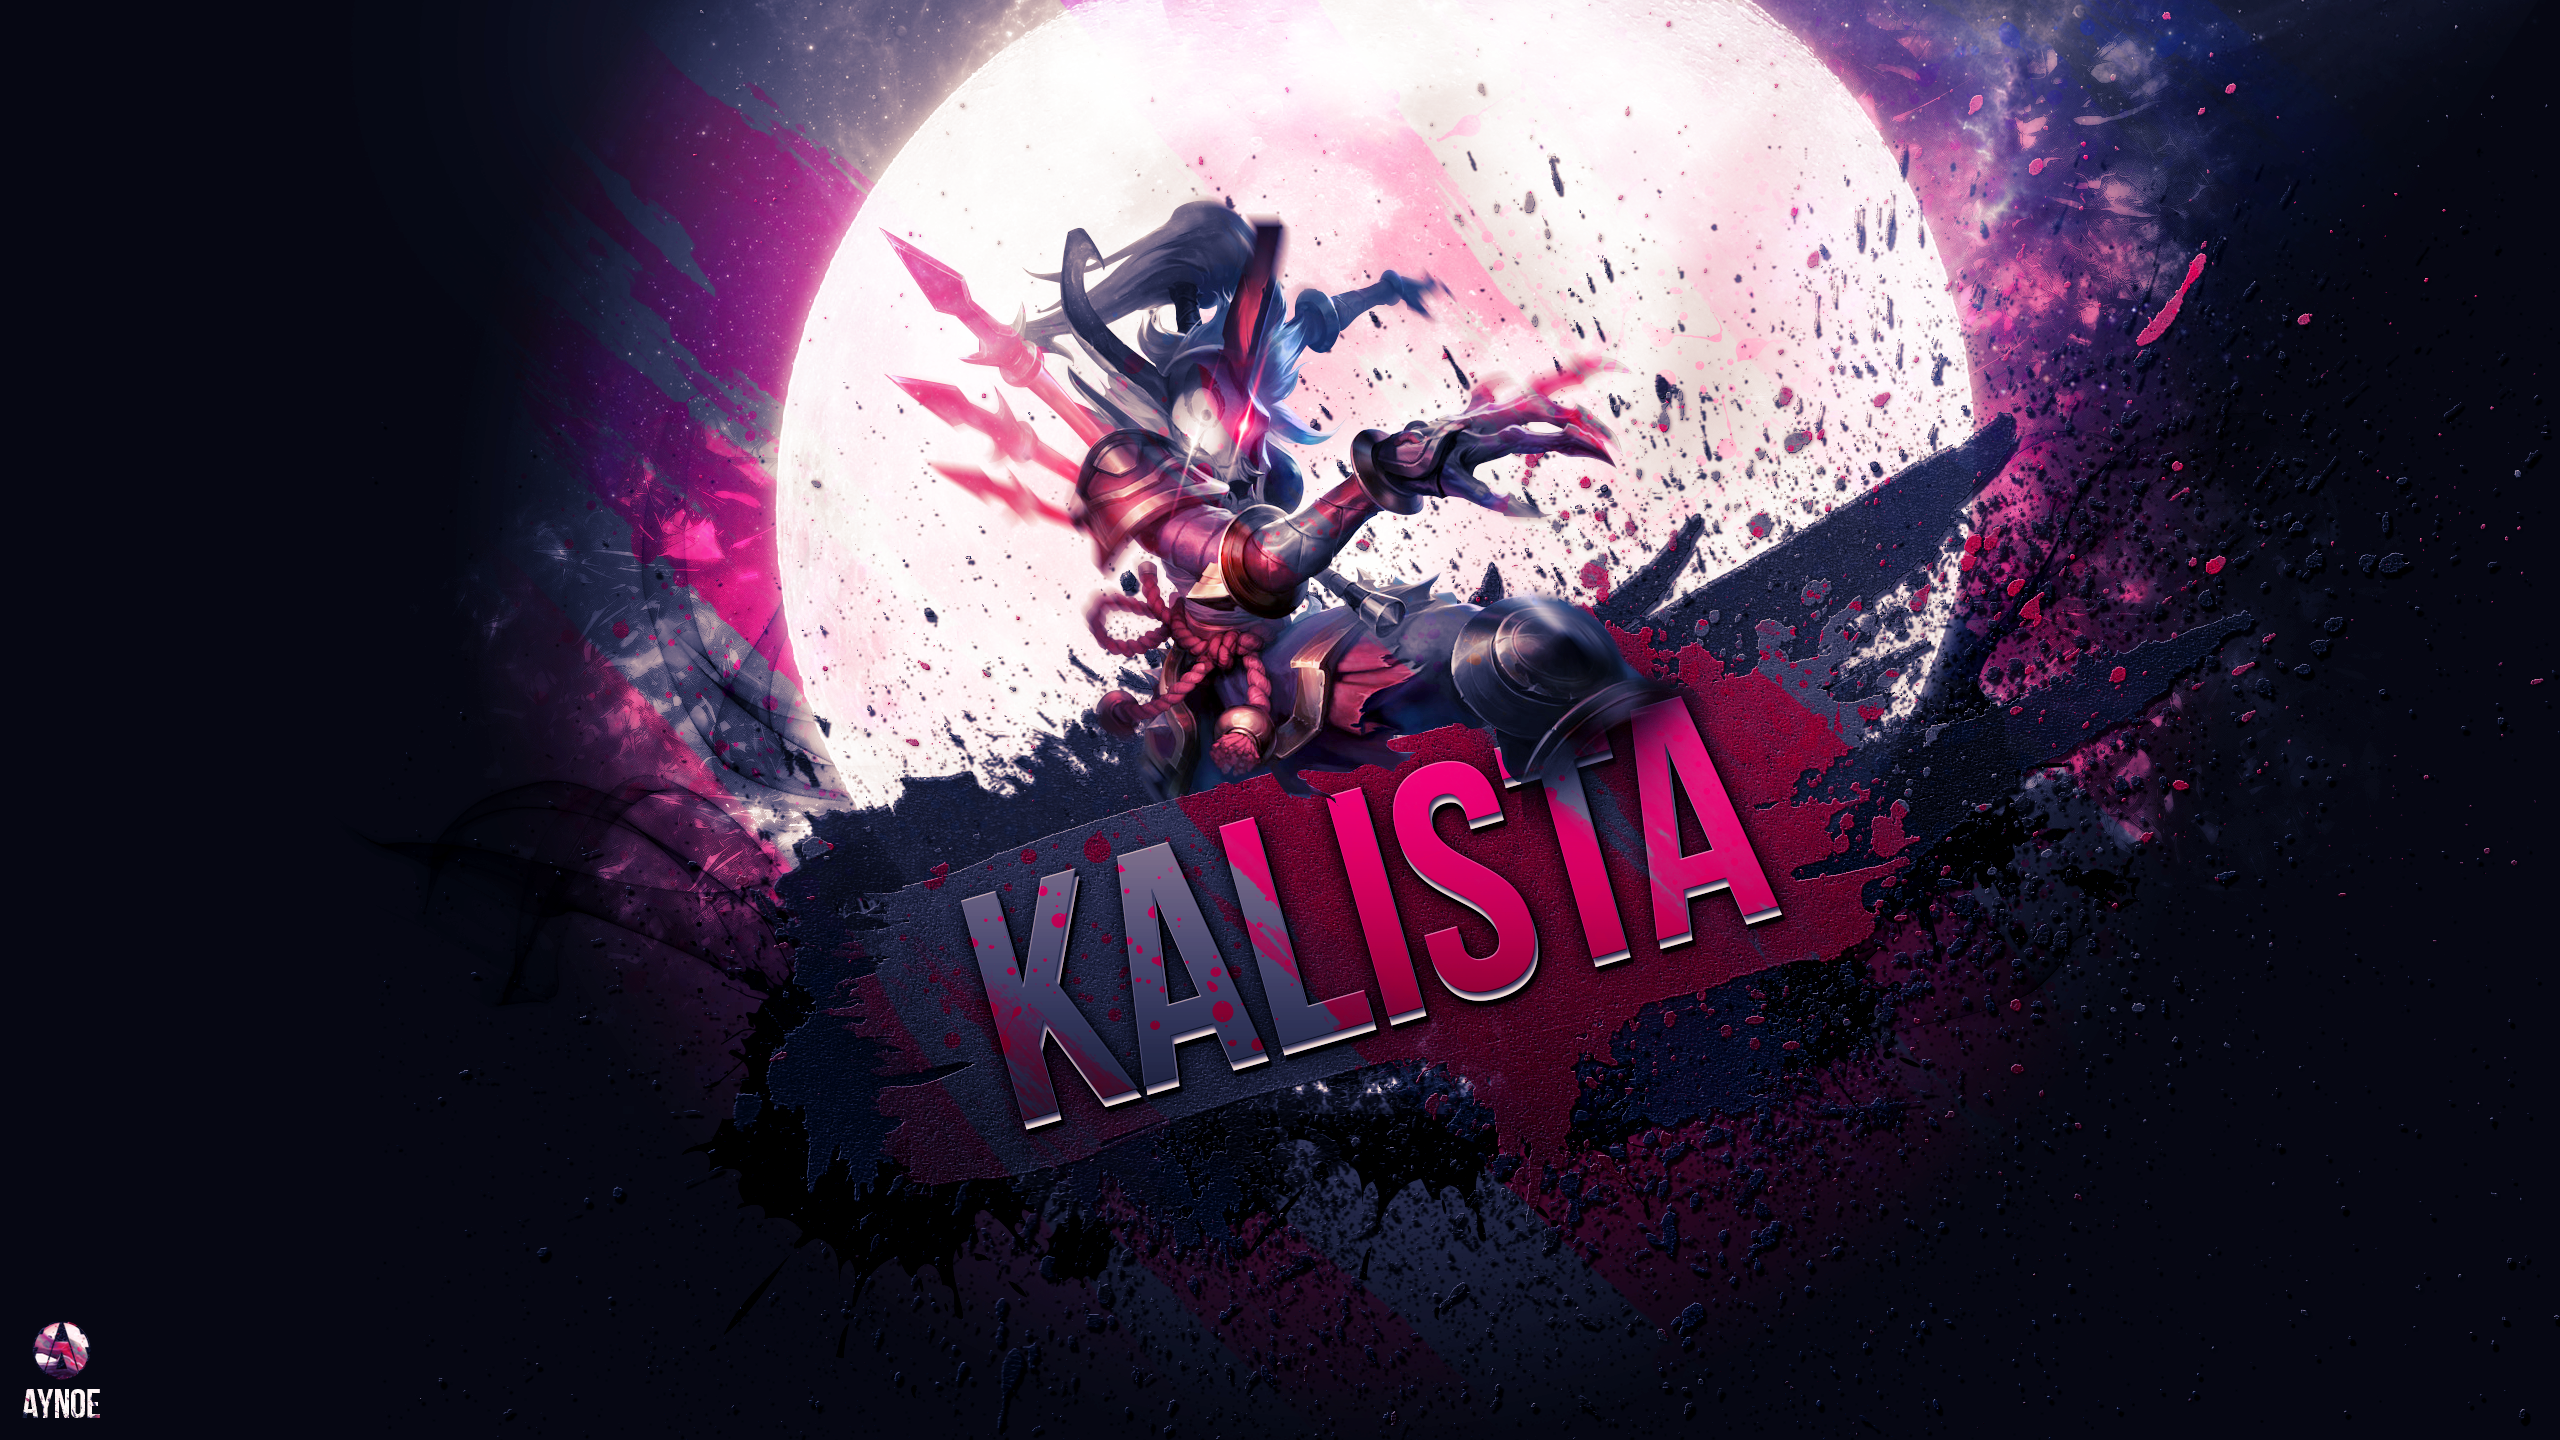 Kalista ~ League of legends - Wallpaper